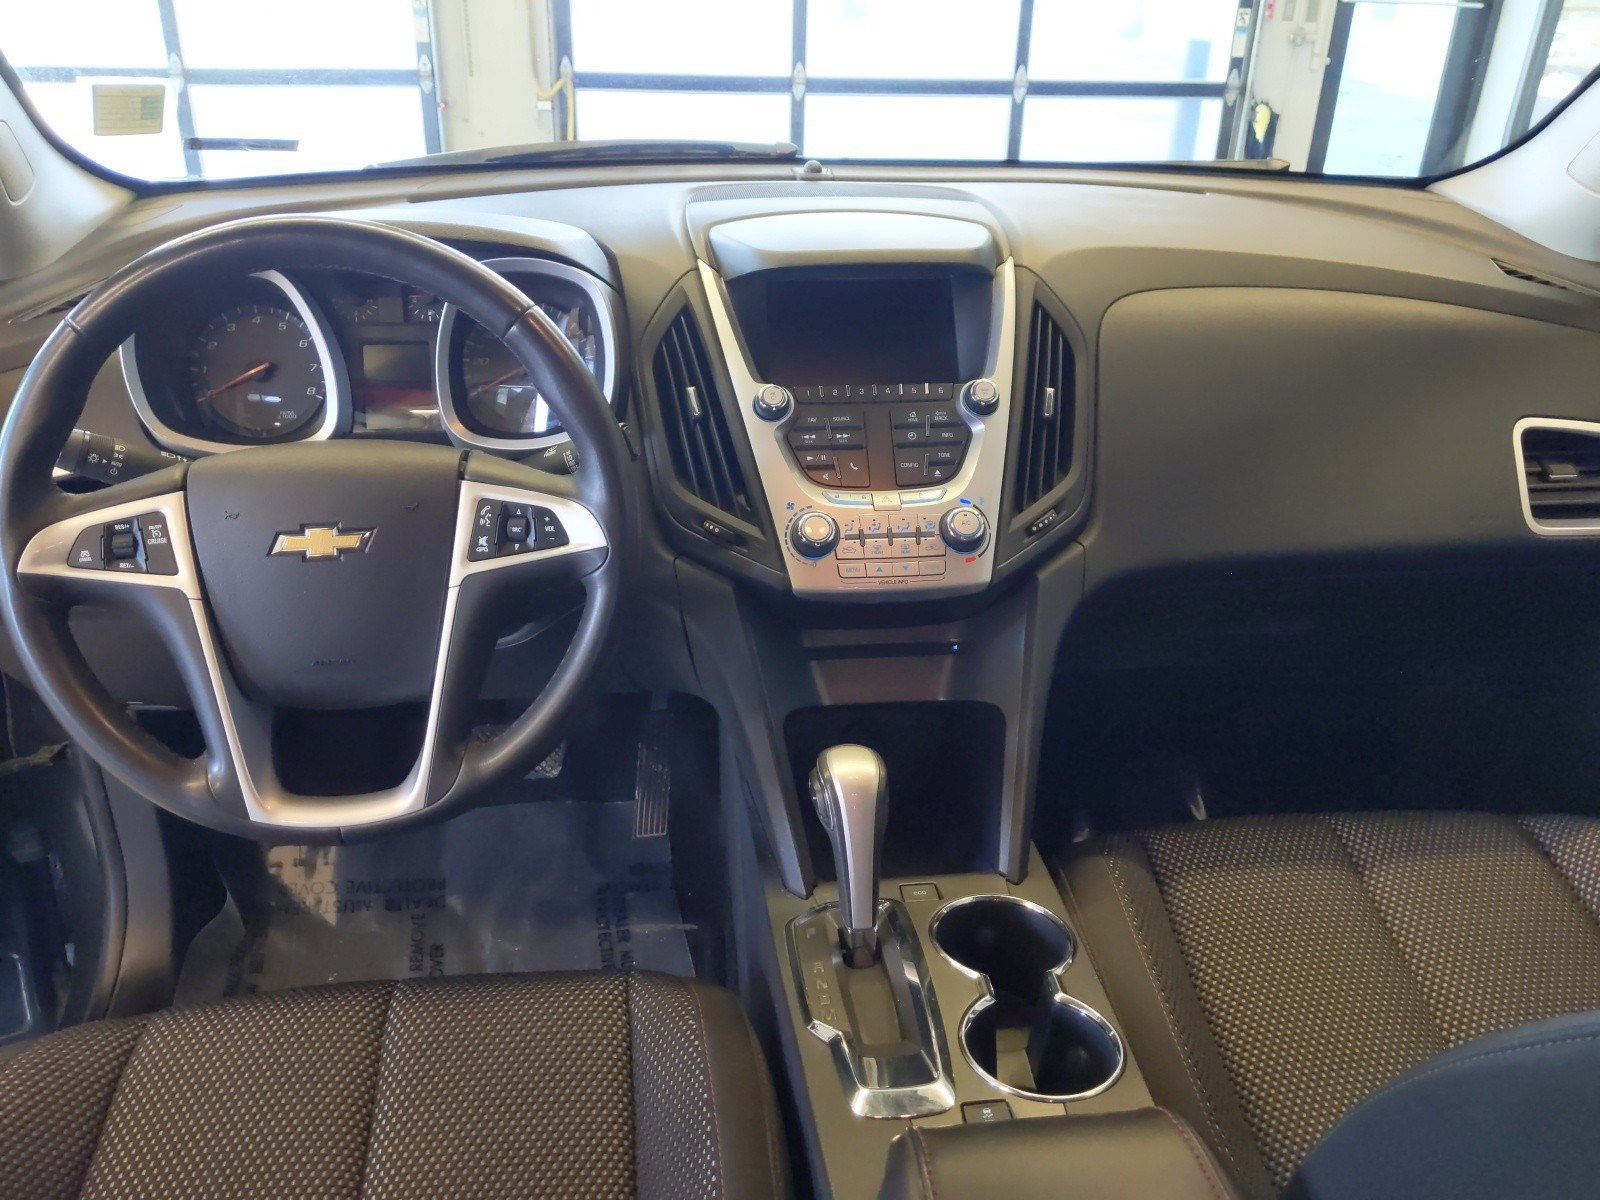 Used 2014 Chevrolet Equinox LT Sport Utility for sale in Lincoln NE